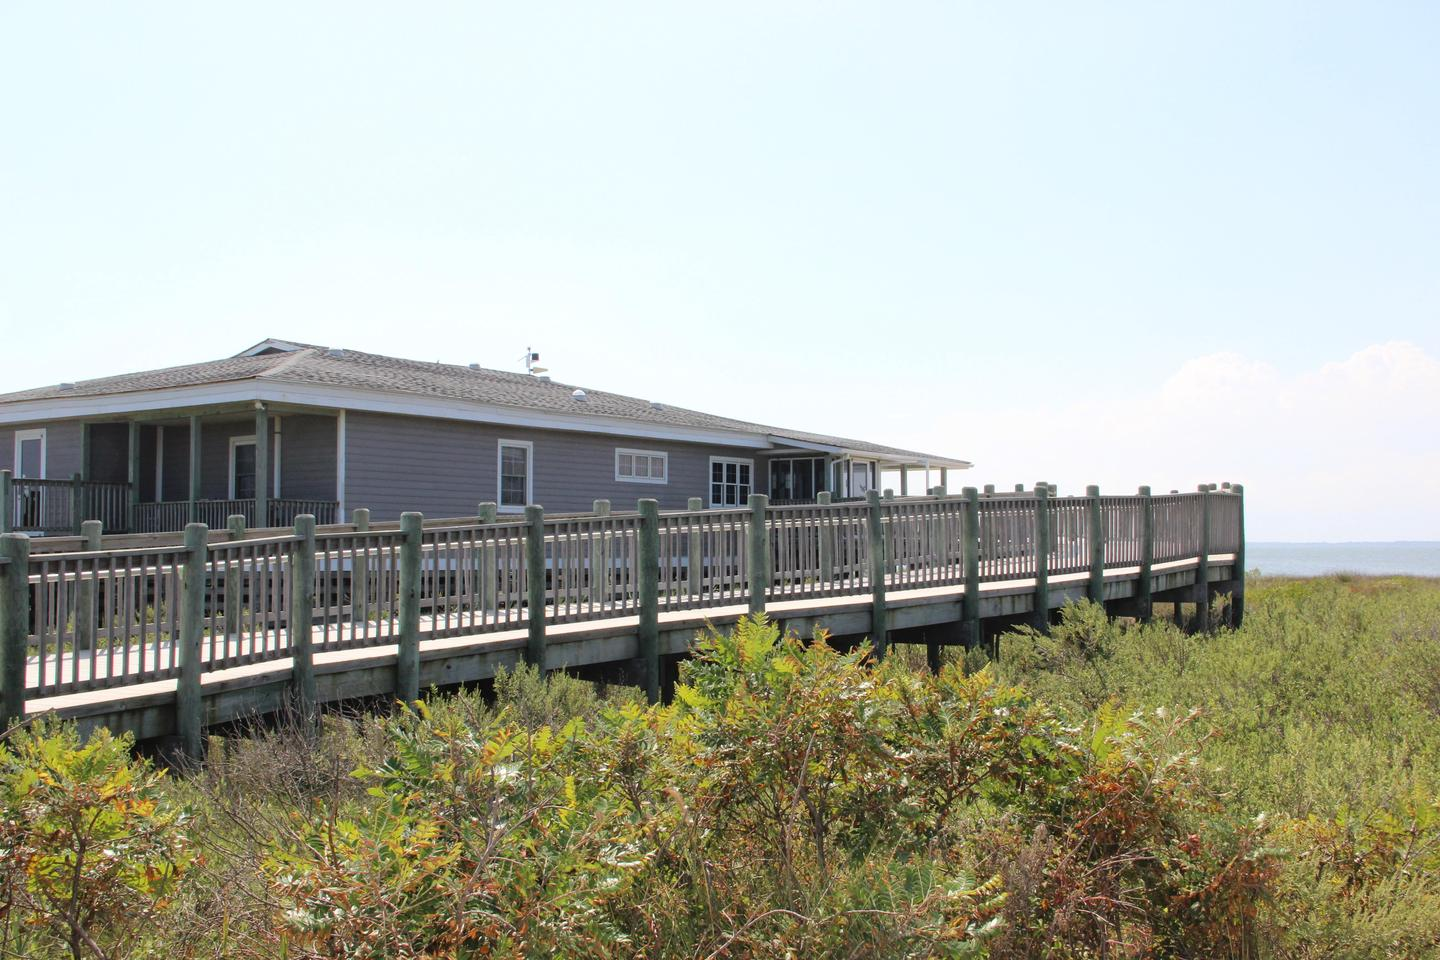 Toms Cove Visitor Center and access ramp (VA)